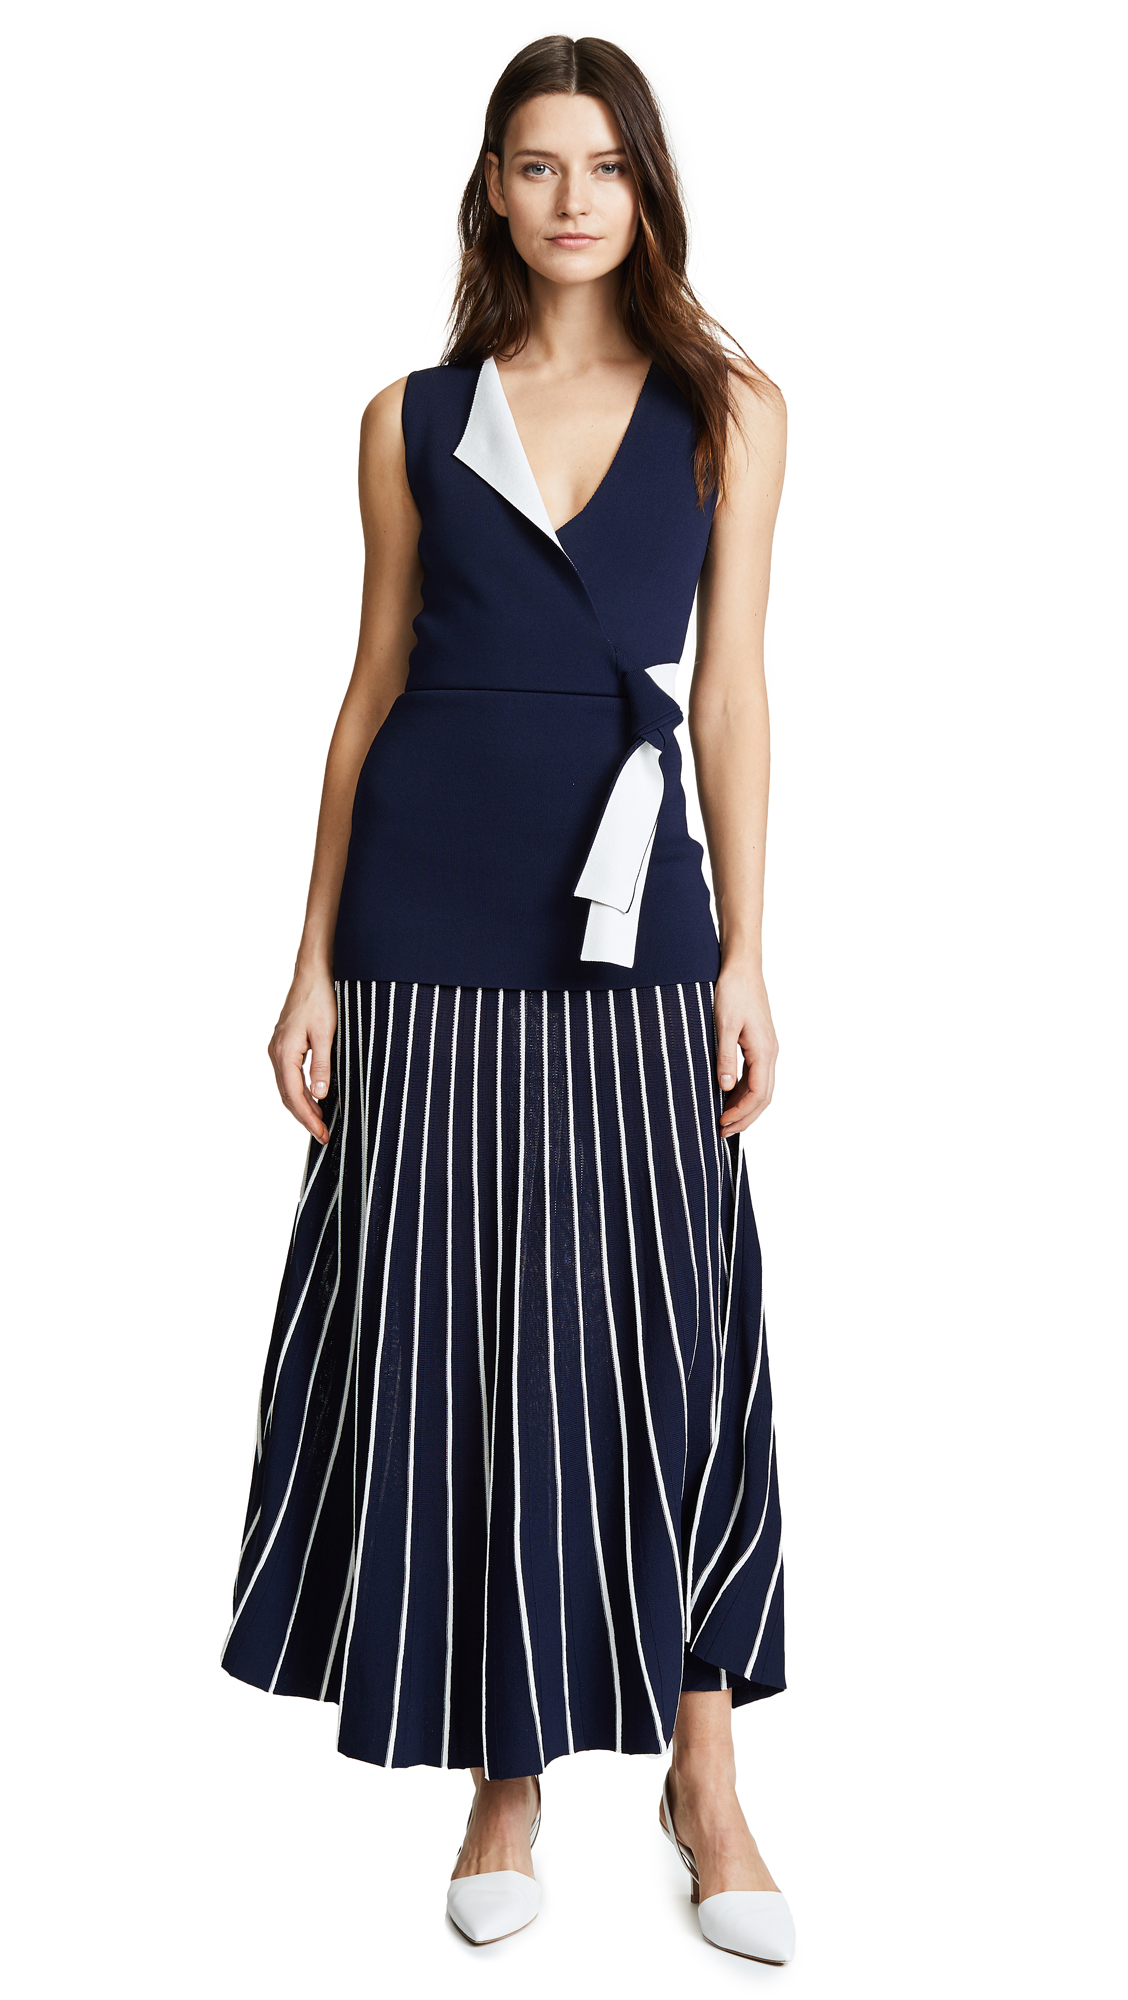 Dion Lee Density Pleat Dress